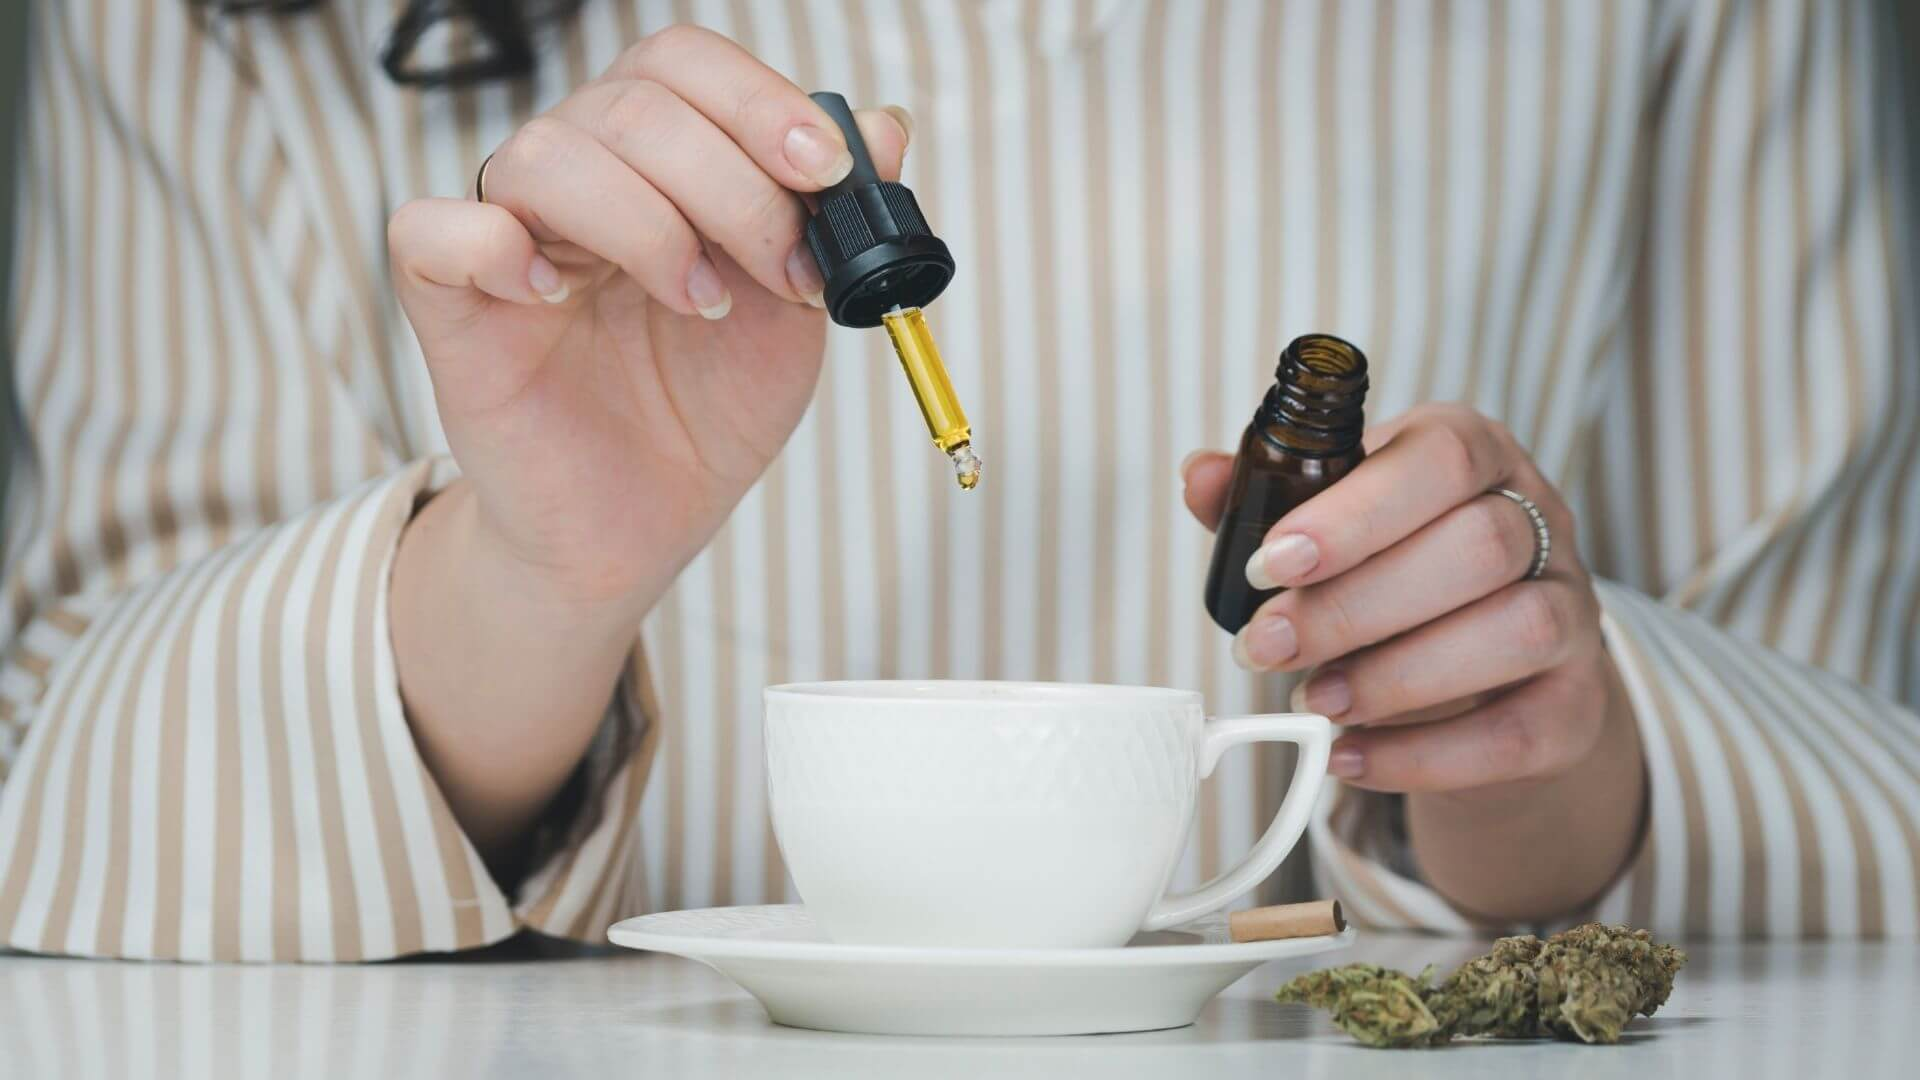 CBD Oil dropping into a cup of coffee